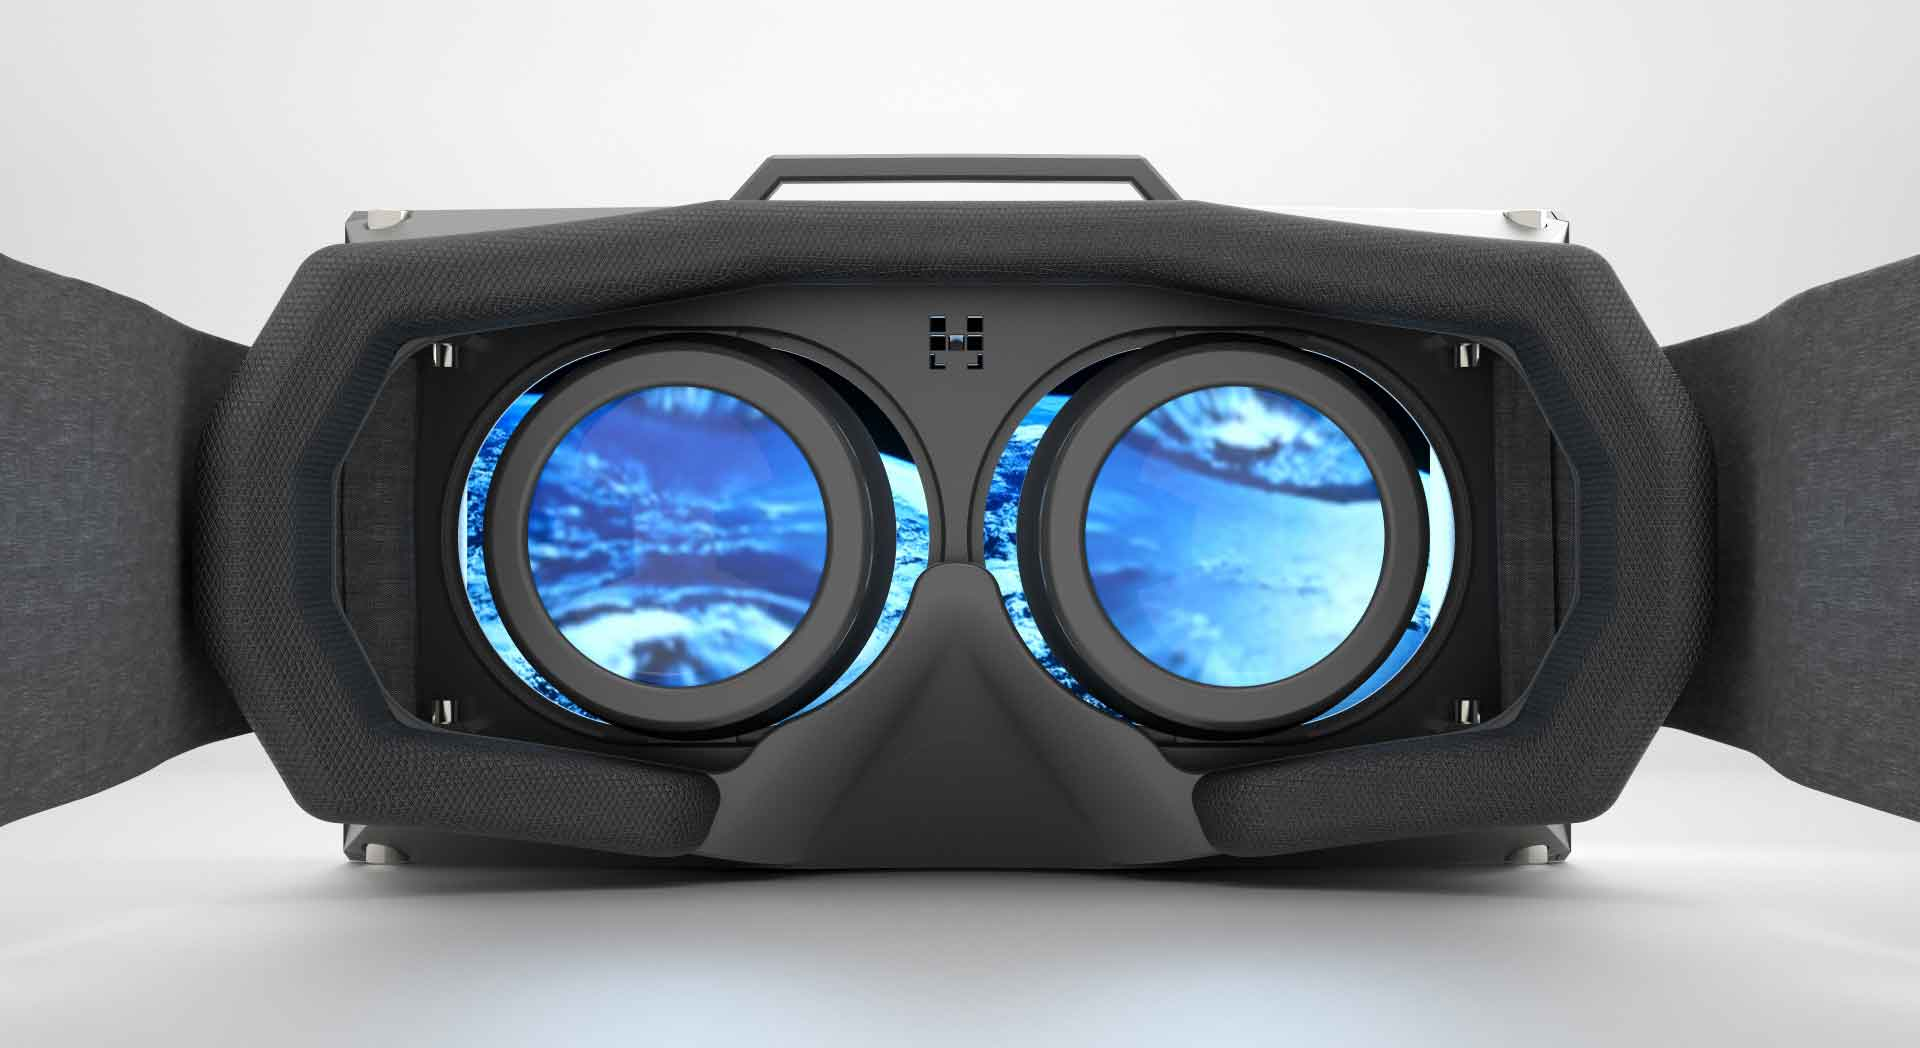 2016: The Beginning Of Virtual Reality Future